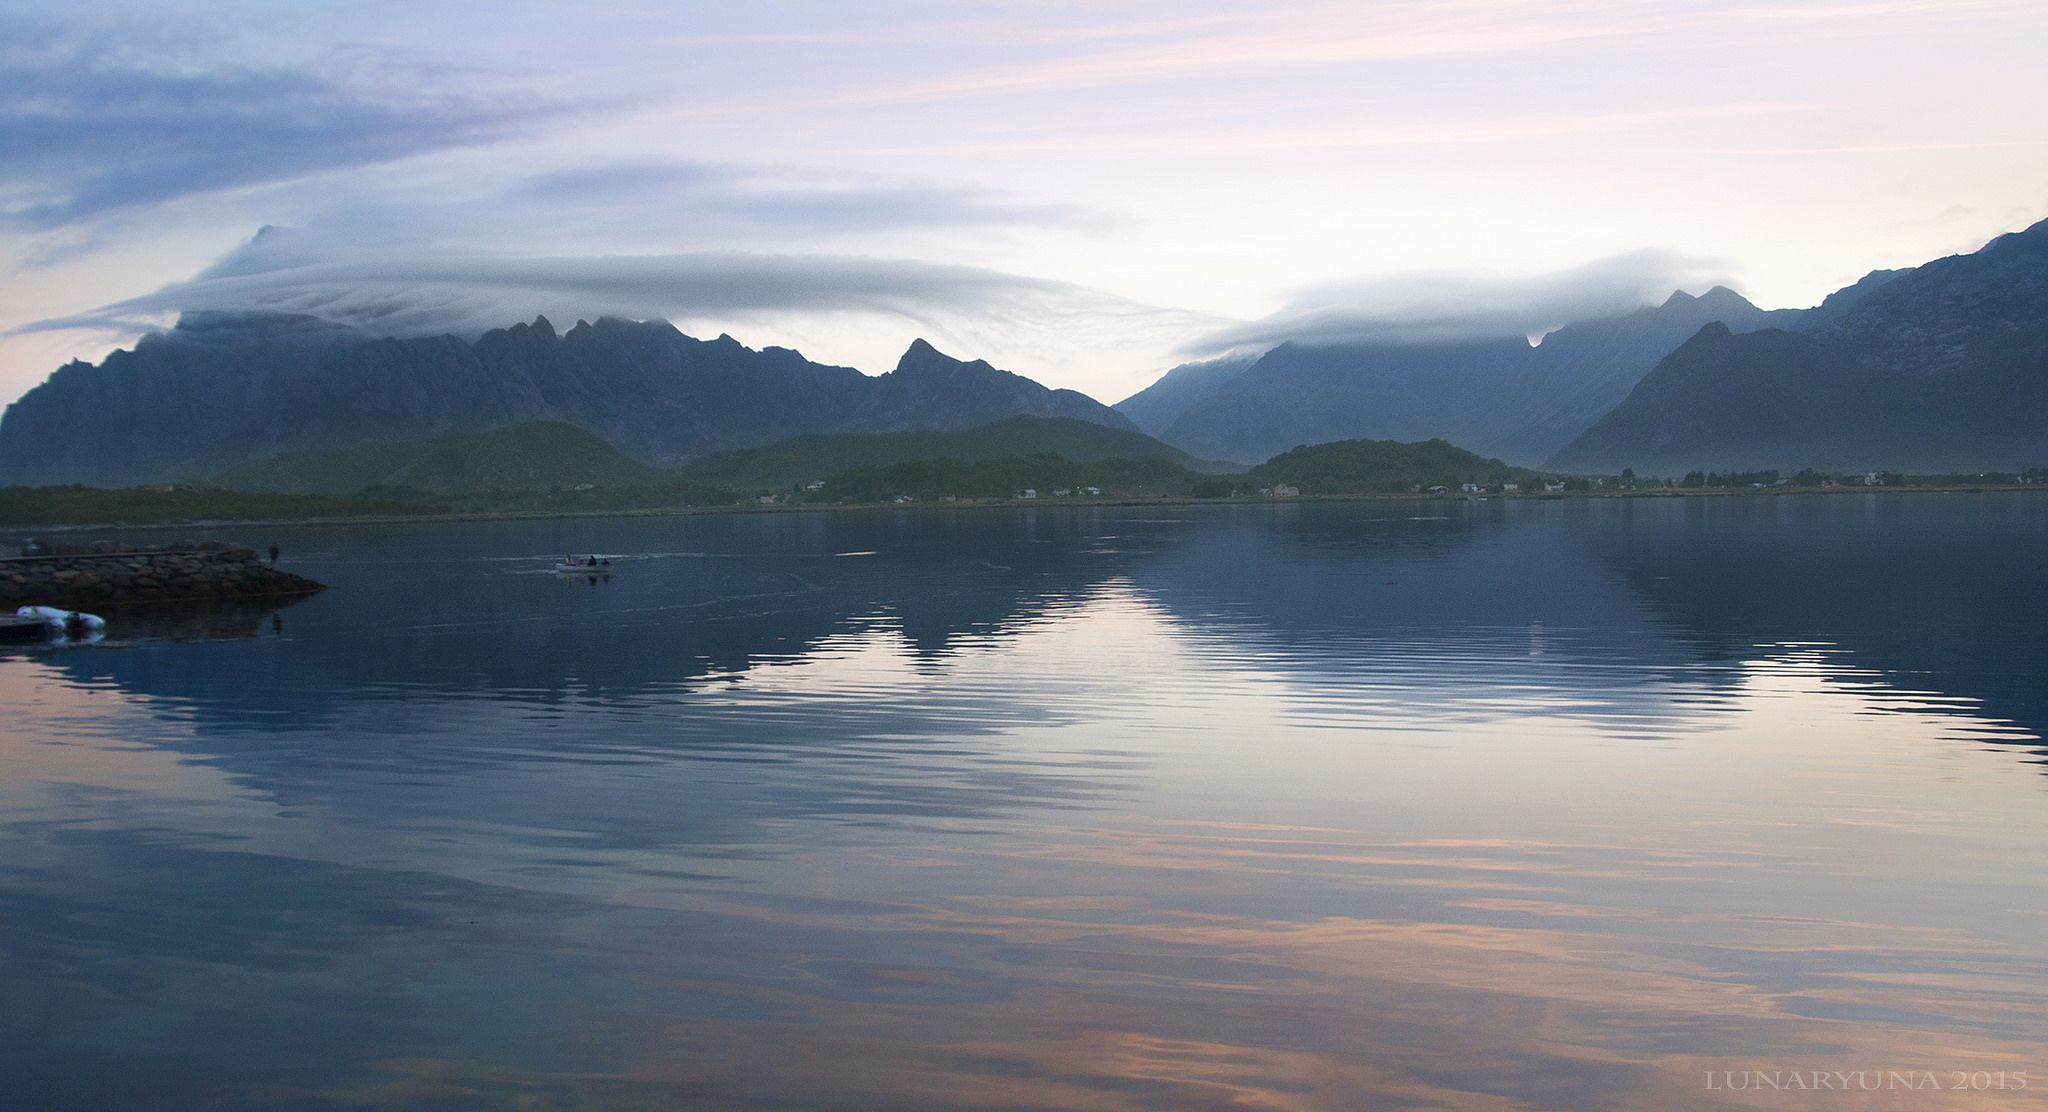 https://flic.kr/p/BeeKDL | an almost silent Northern sunset lullaby | a moody, sort of natural watercolour Lofoten sunset soft as a feather, turning these rugged islands into something soft and fairytale alike. To be out there on a boat at this magical hour is an experience to behold.